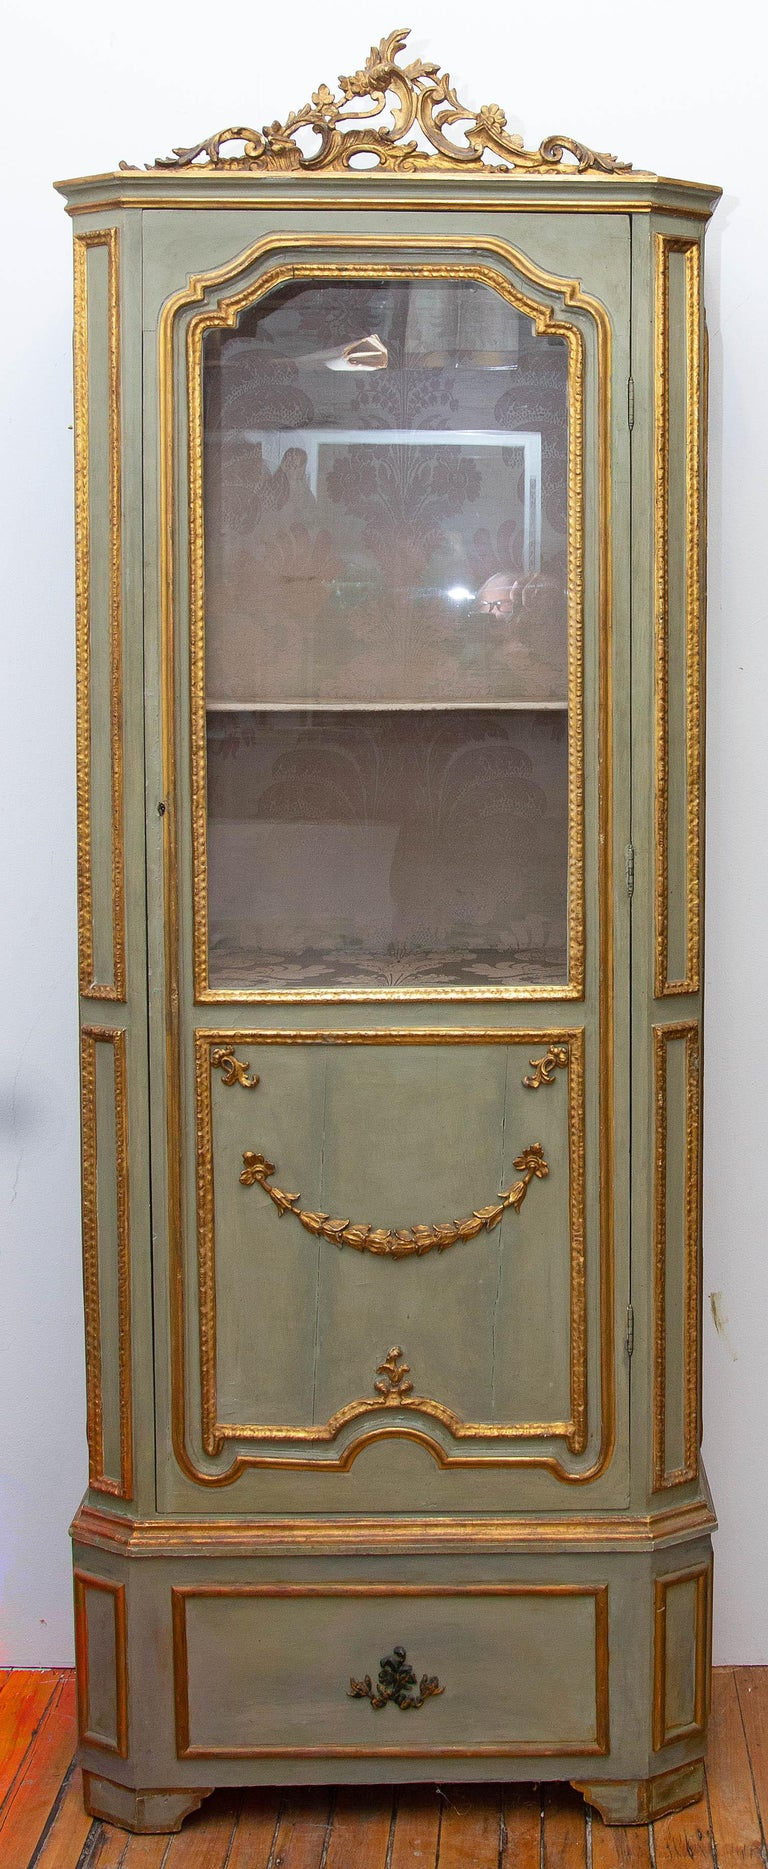 19th century Italian painted and parcel-gilt curio cabinet. Carved wood. Louis XVI style. Original damask silk interior. Fitted with an interior light.